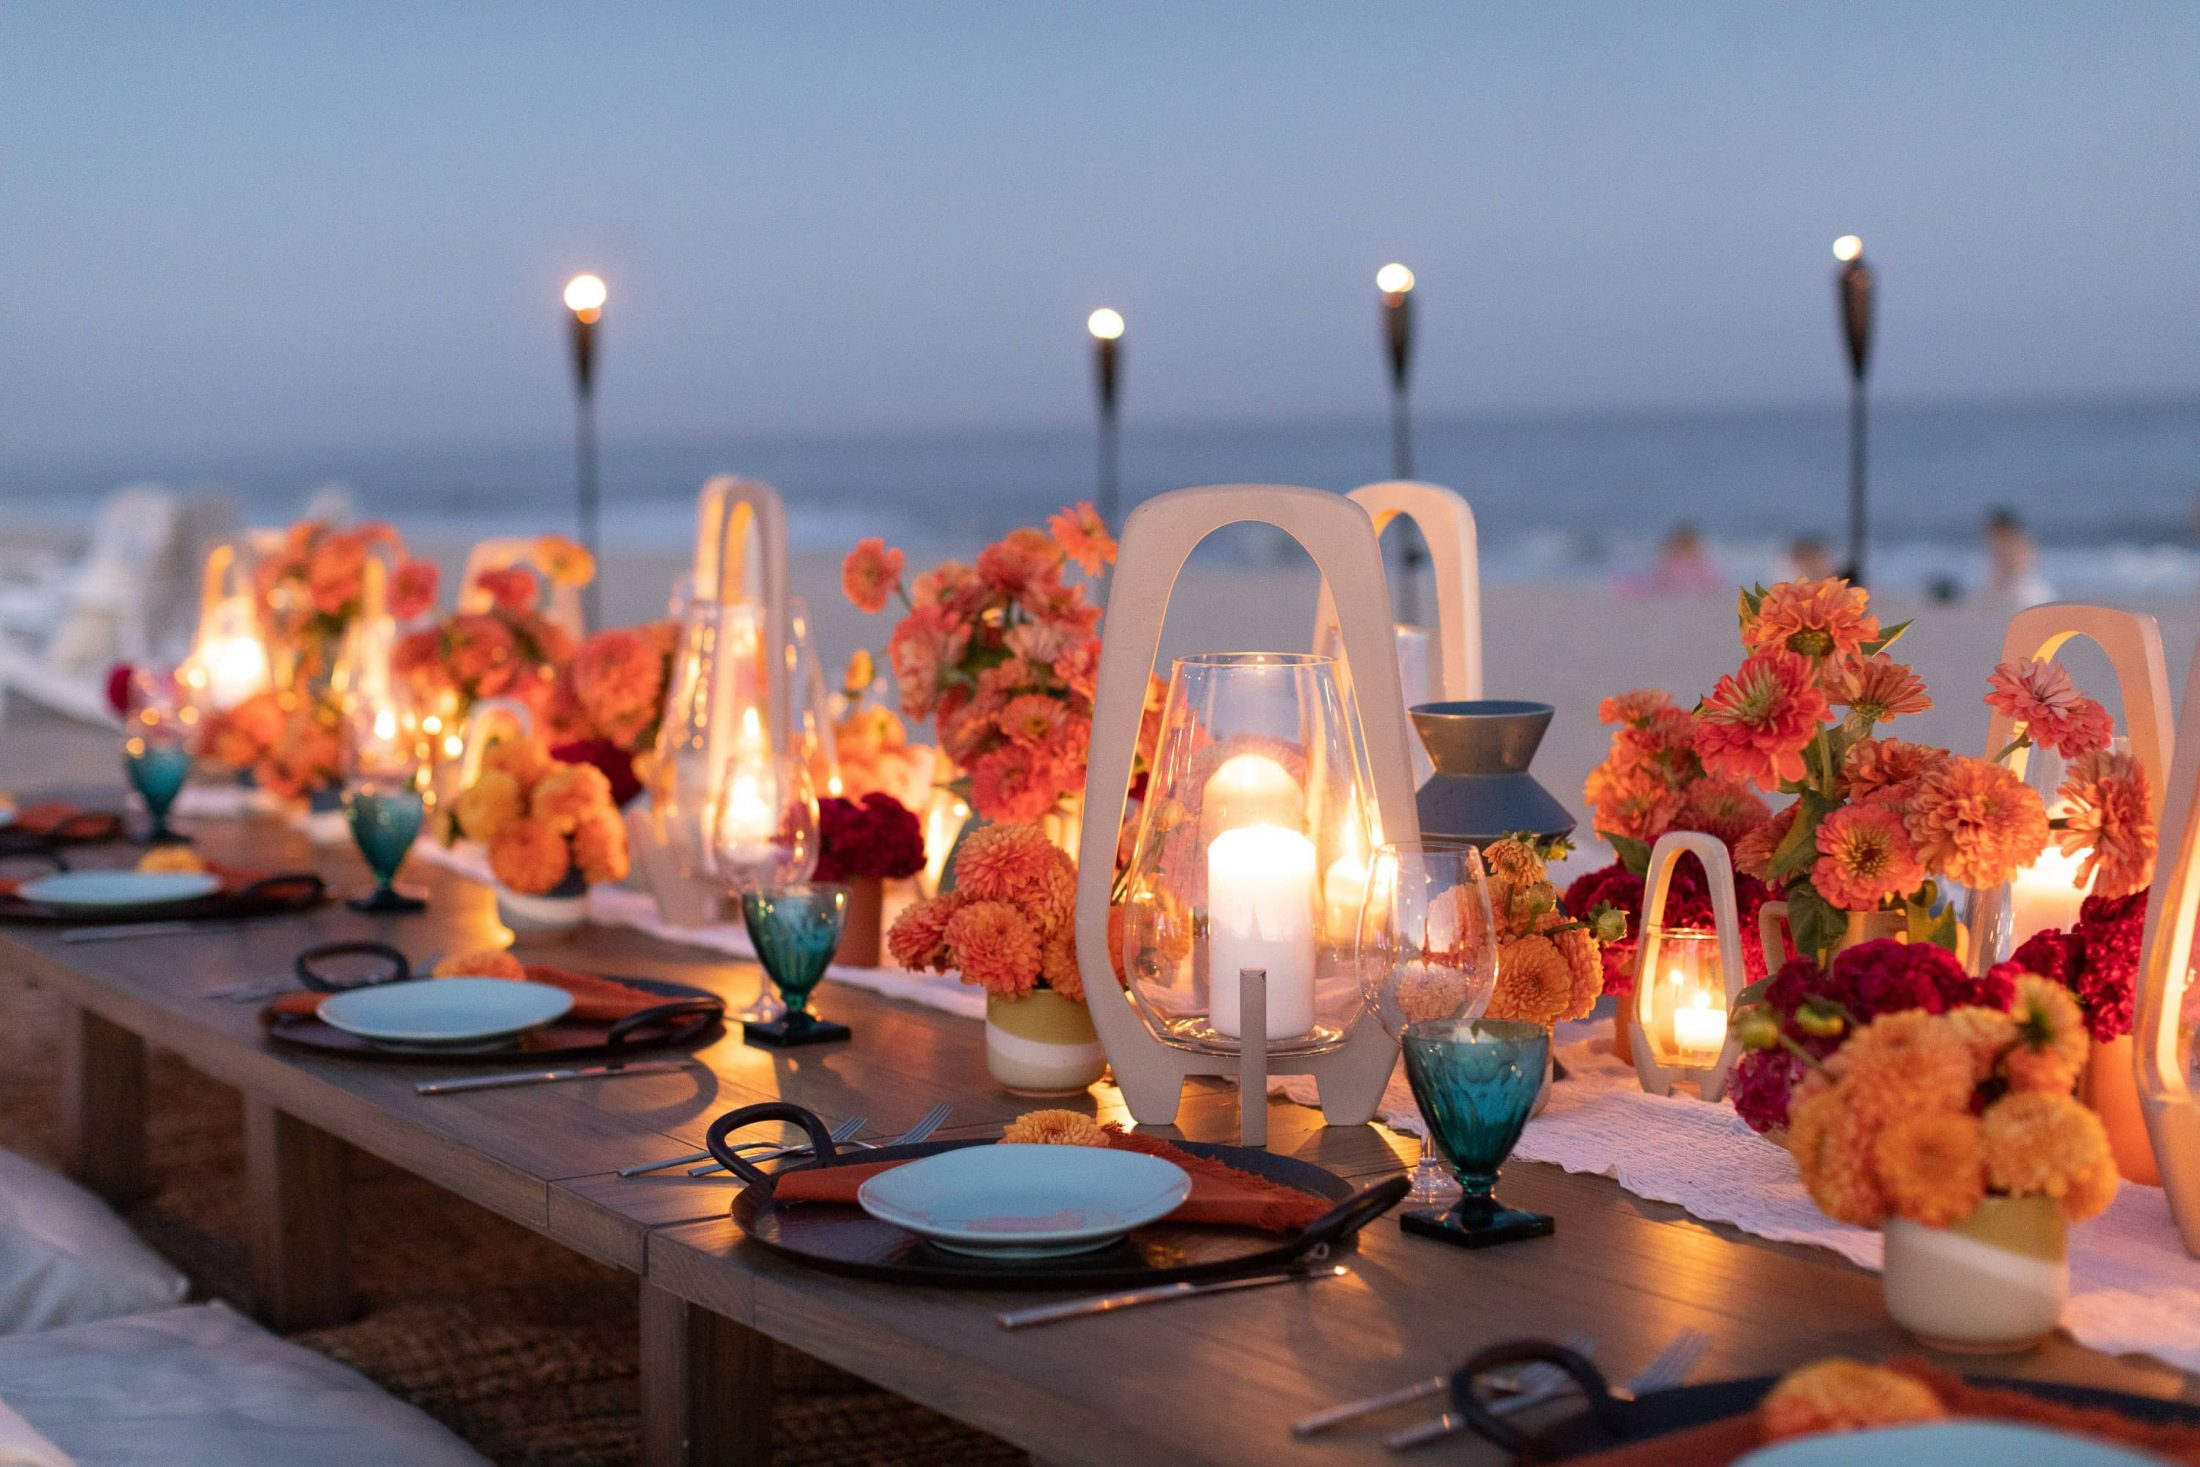 Night falling table set-up at 40th birthday dinner on the beach in Southampton | Photo by Luis Zepeda